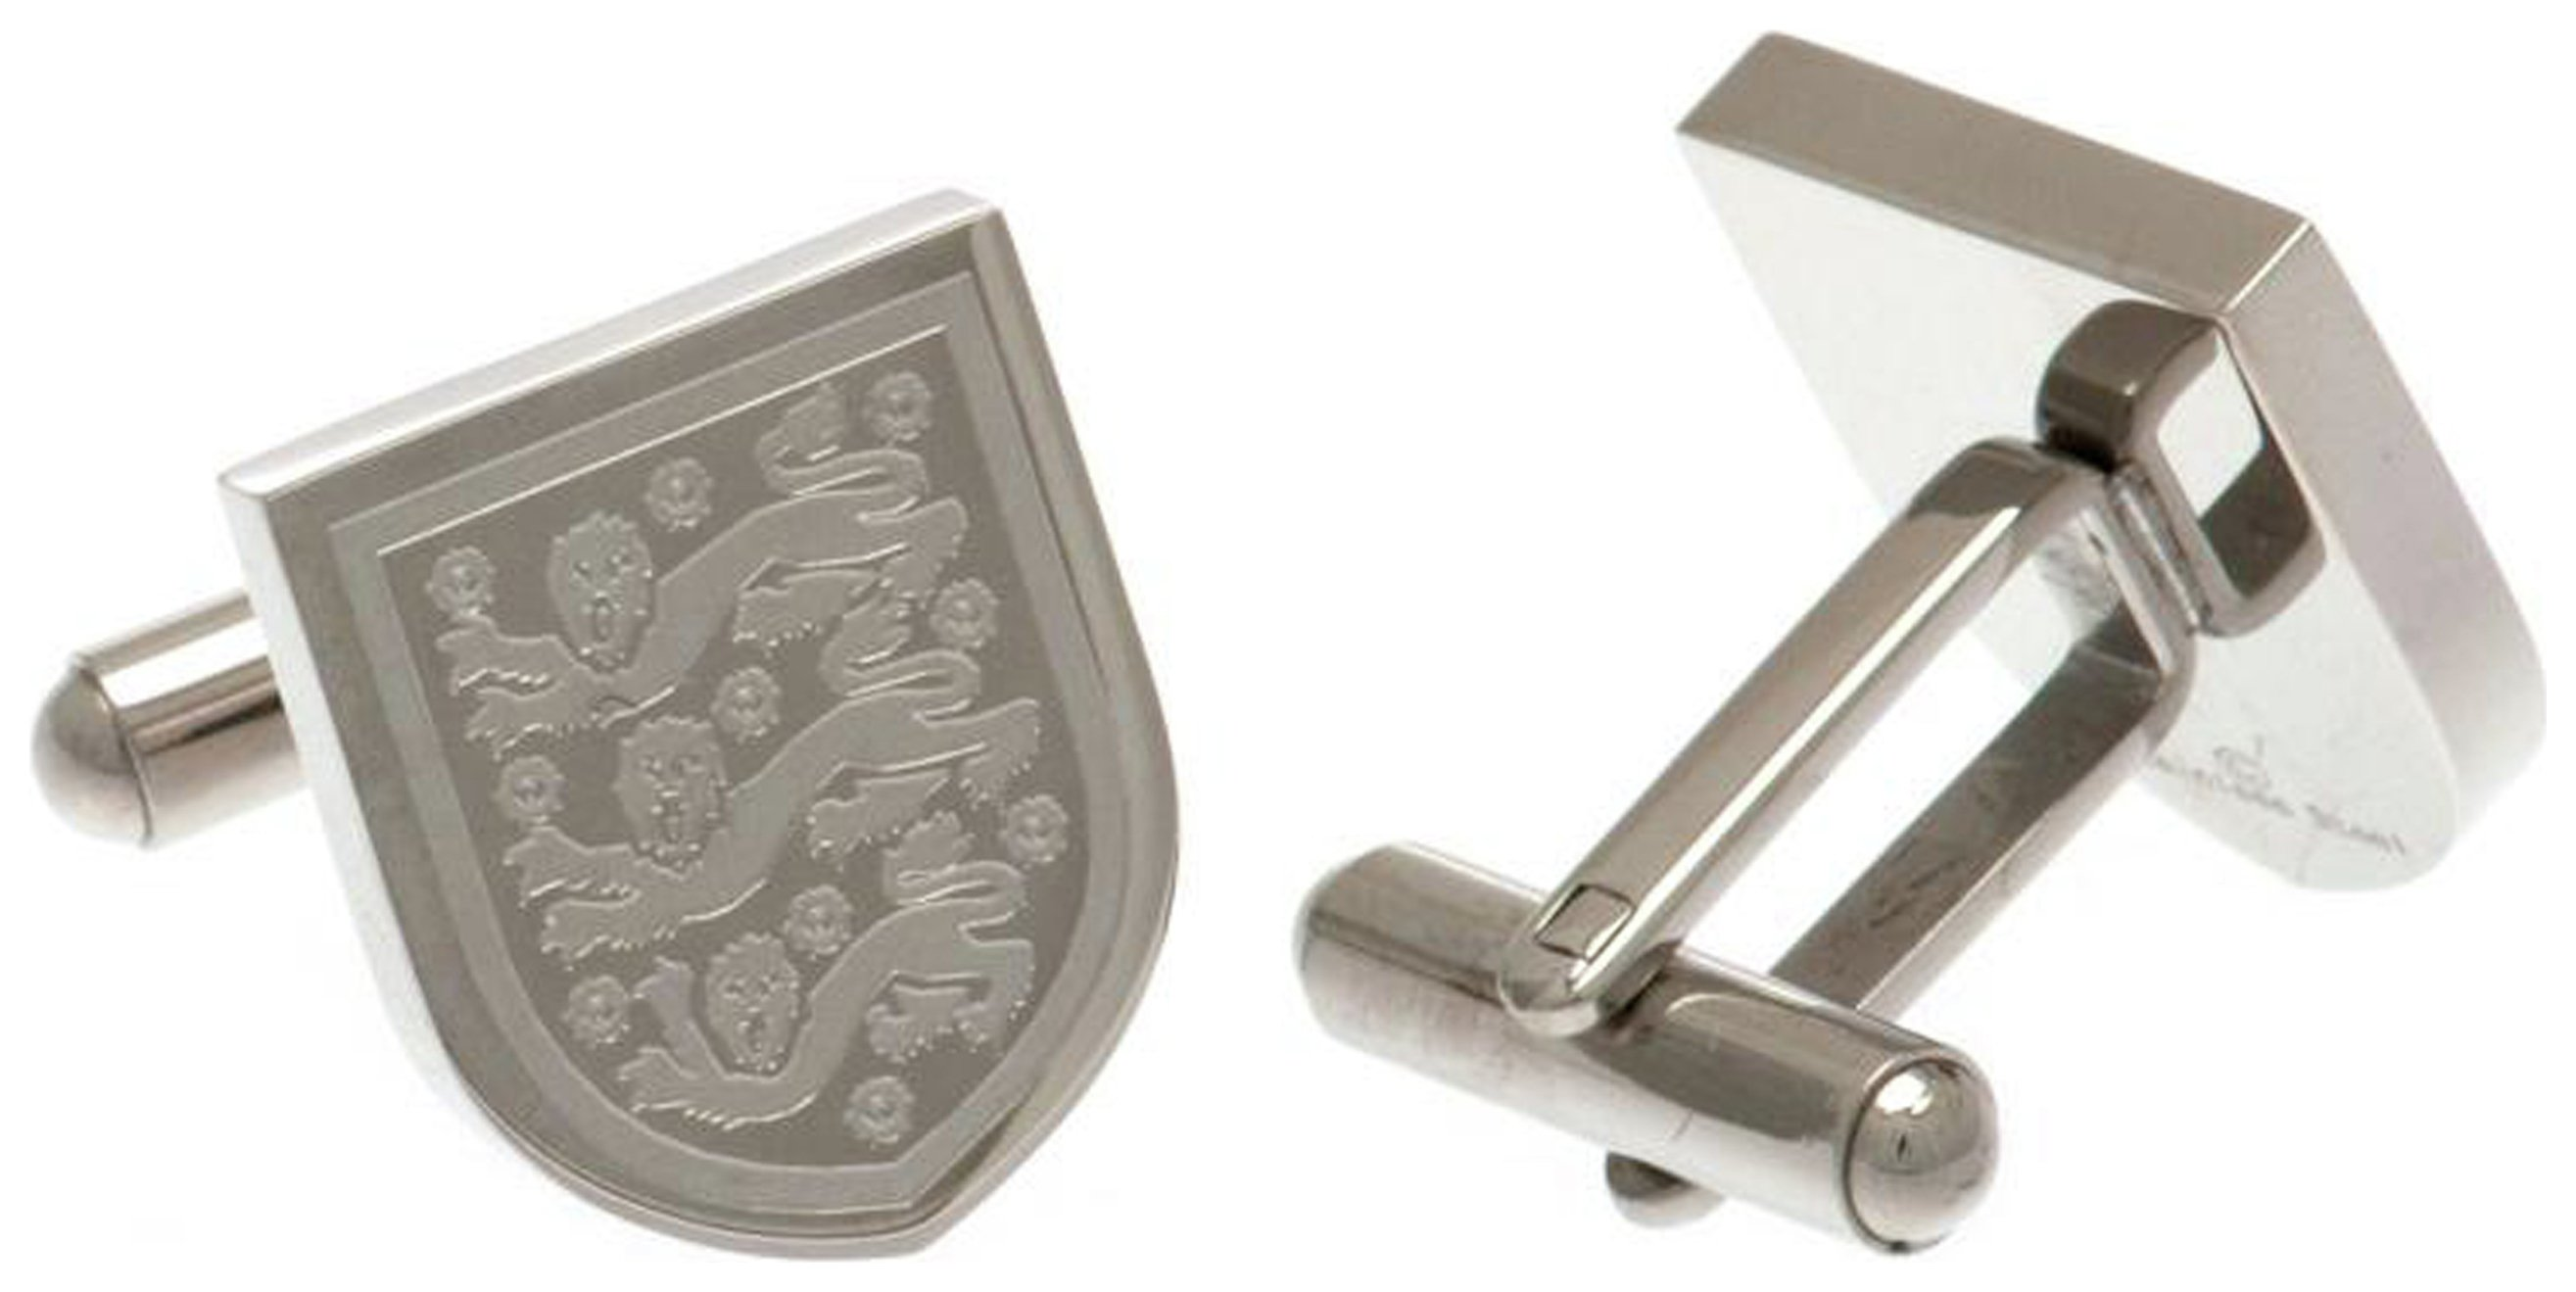 Stainless Steel England FA Crest Cufflinks. review